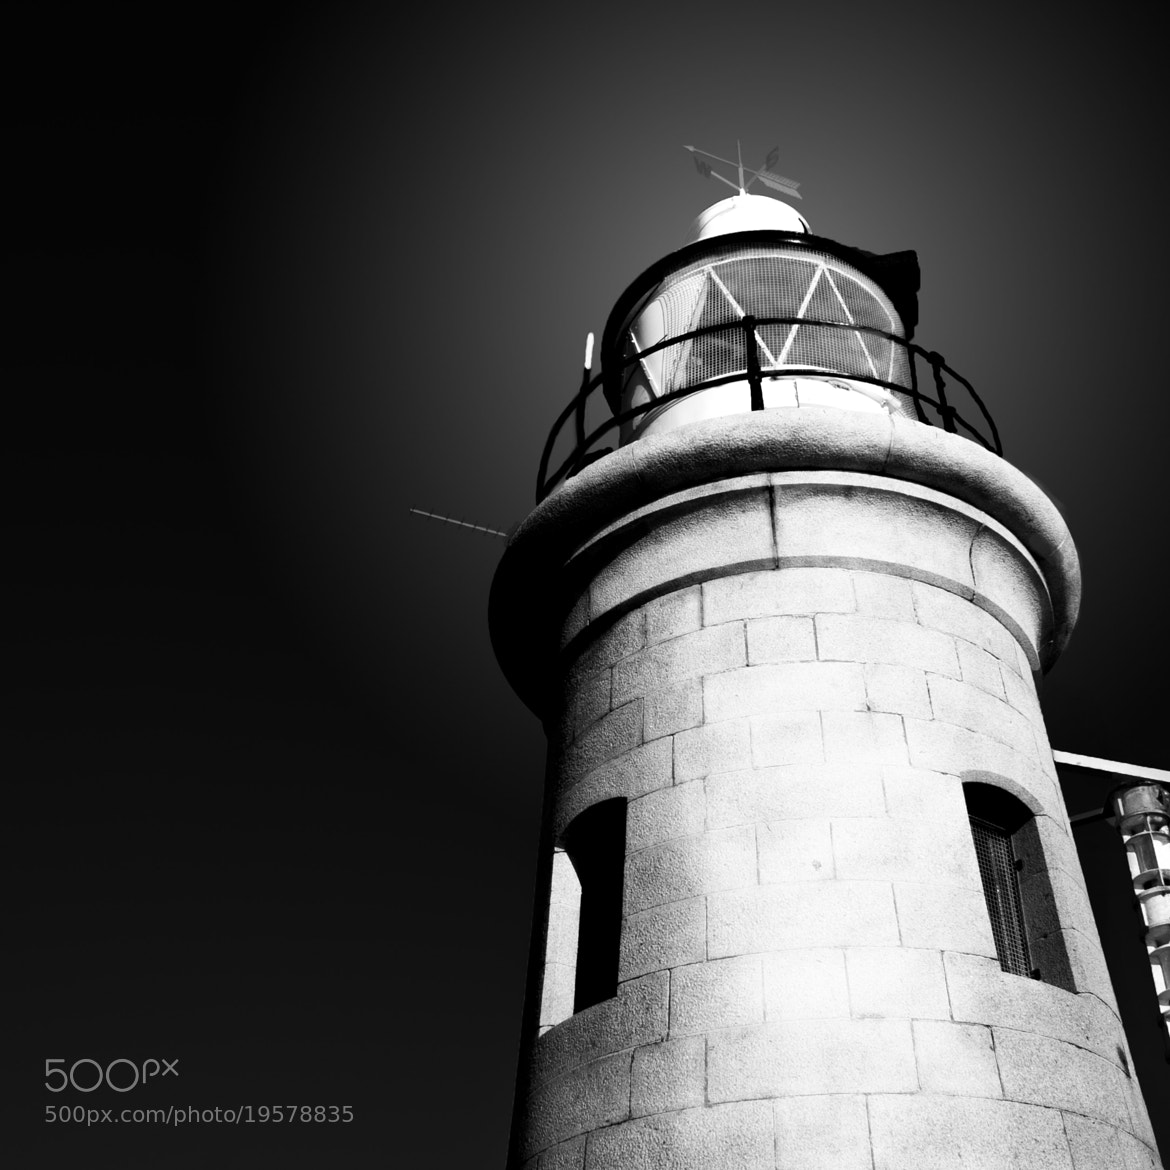 Photograph lighthouse # 3 by David Dobson on 500px